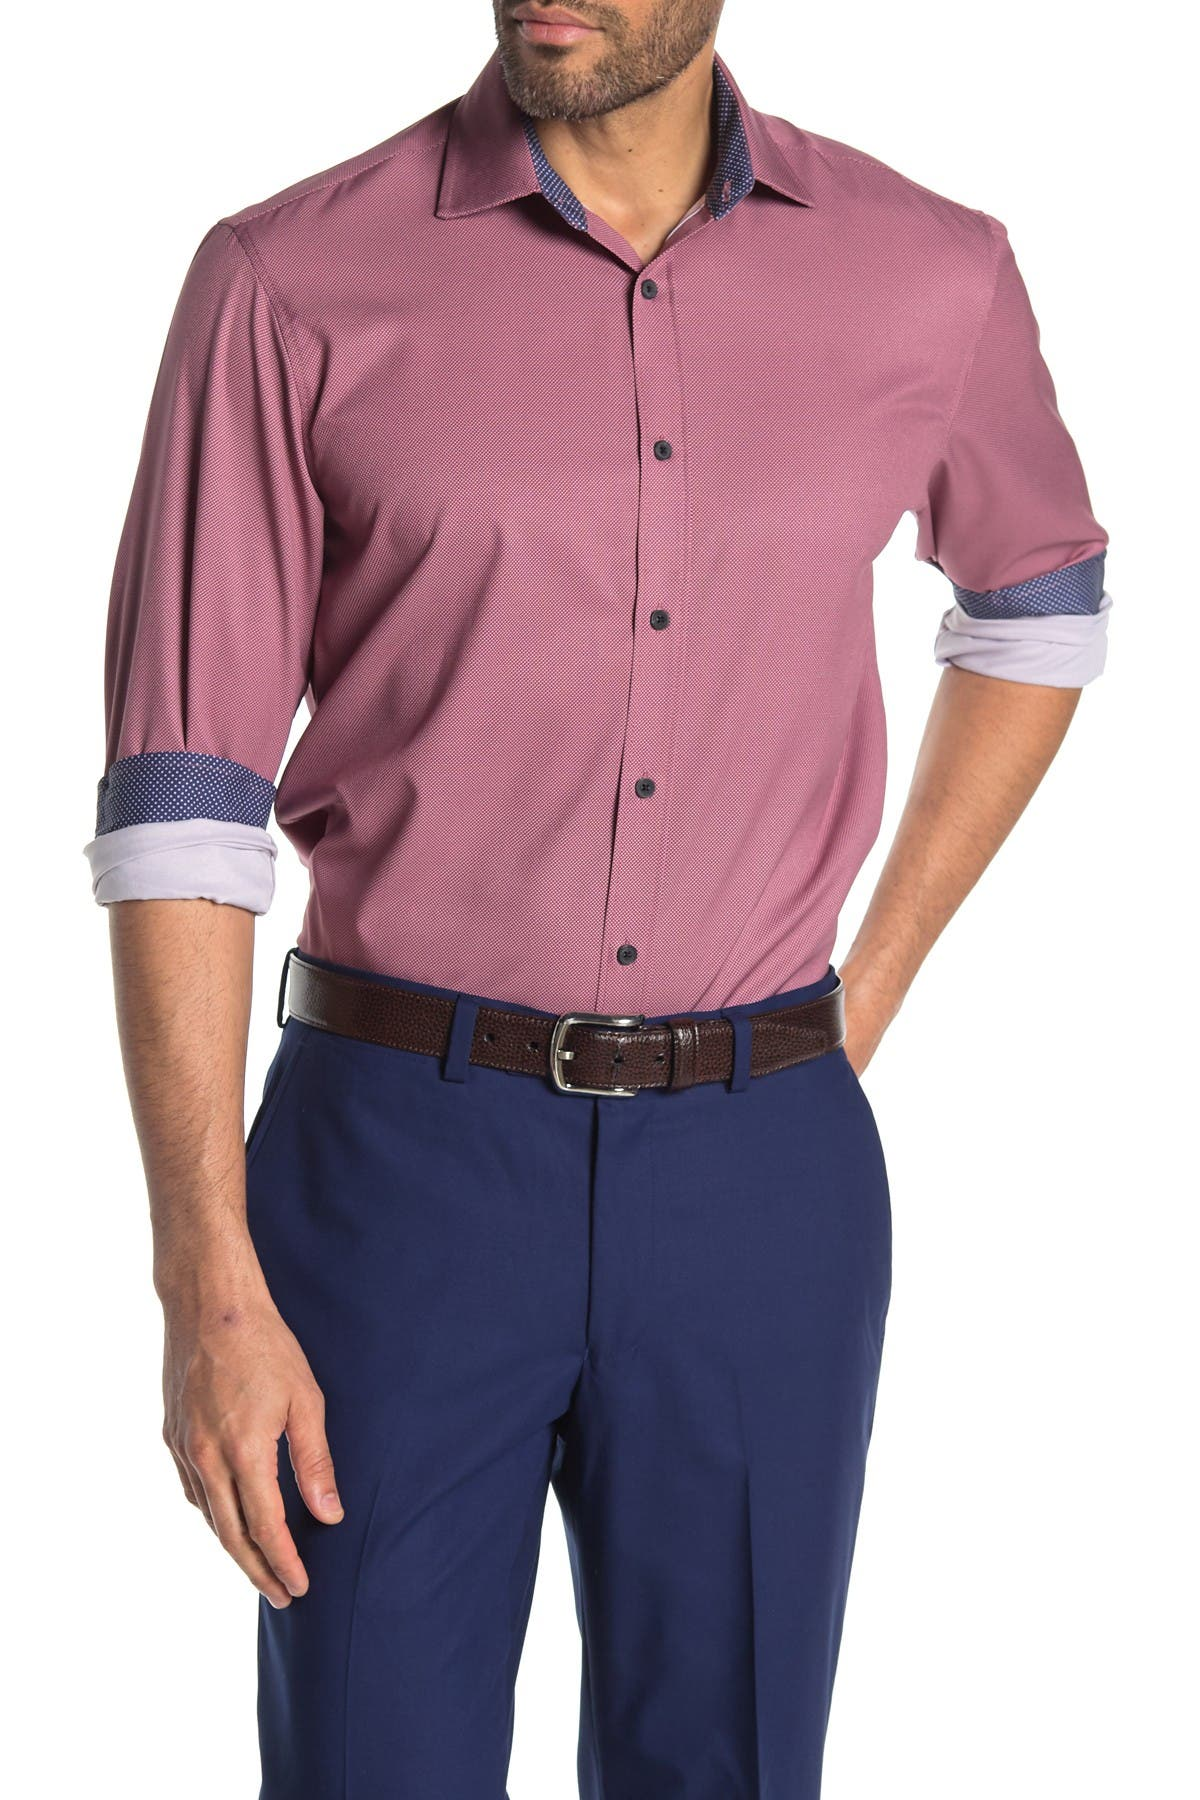 Image of CONSTRUCT Solid Long Sleeve 4-Way Stretch Slim Fit Shirt